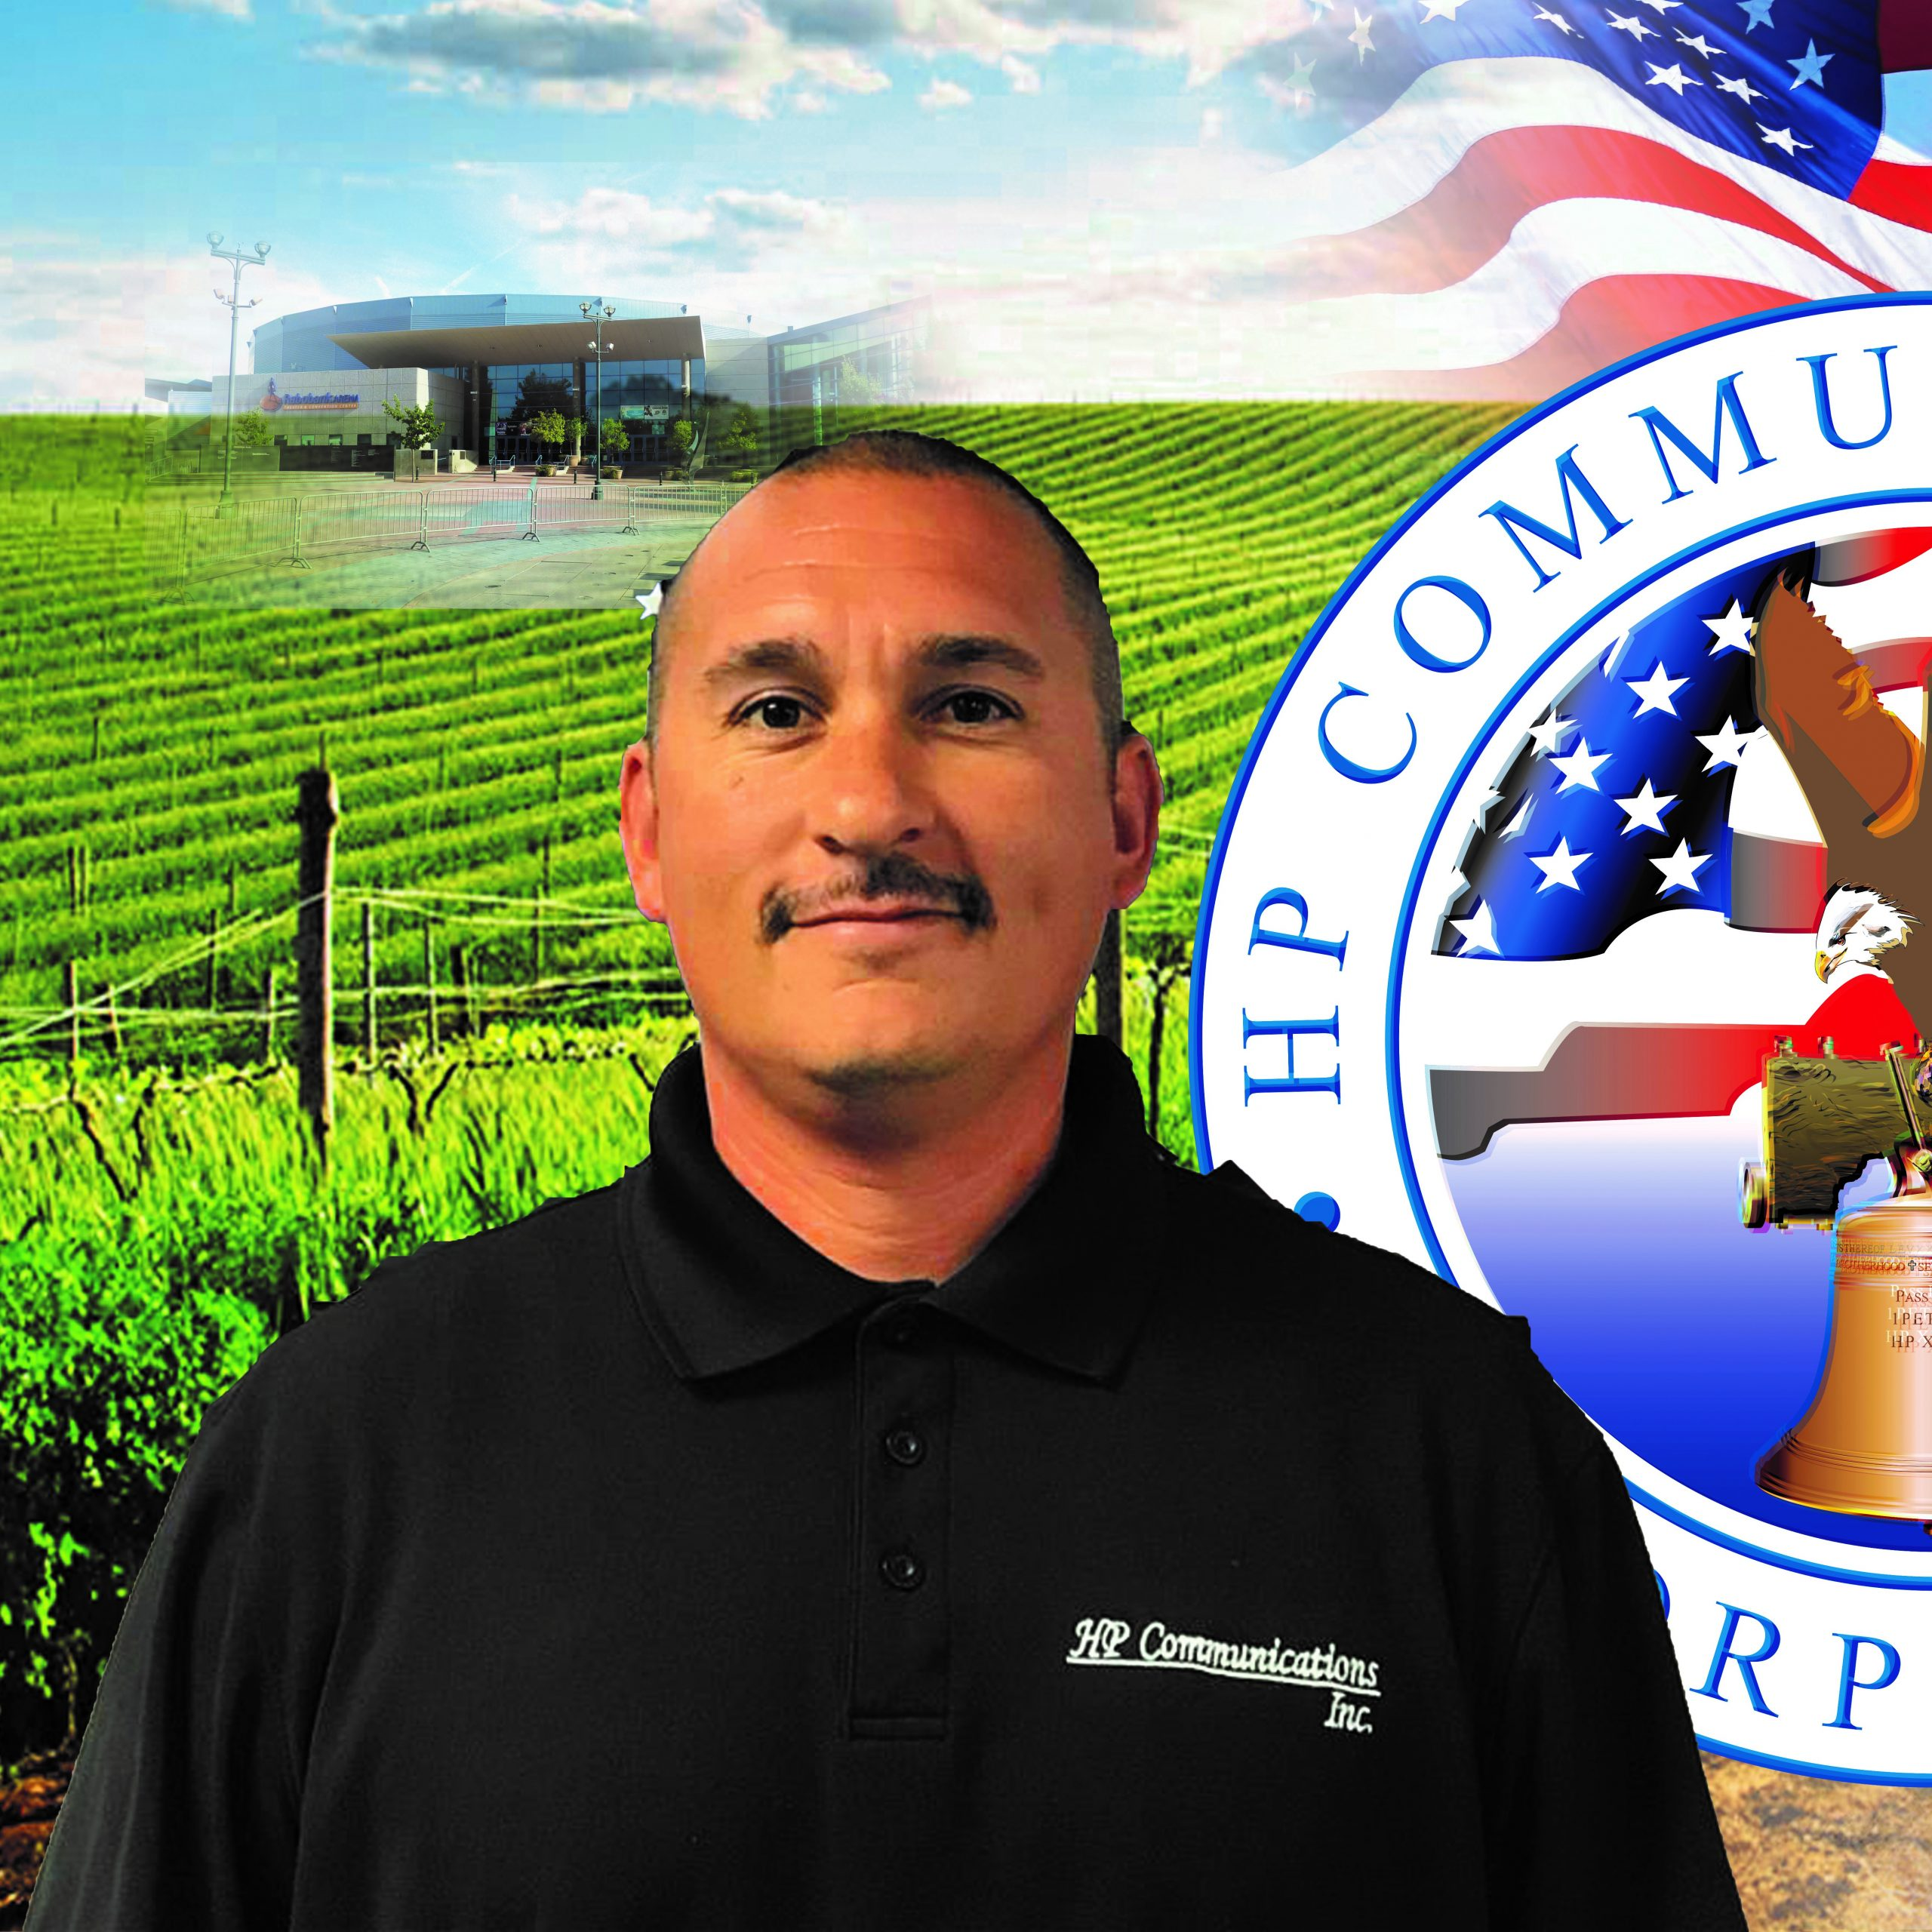 BENNIE TAFOYA CENTRAL VALLEY AREA MANAGER